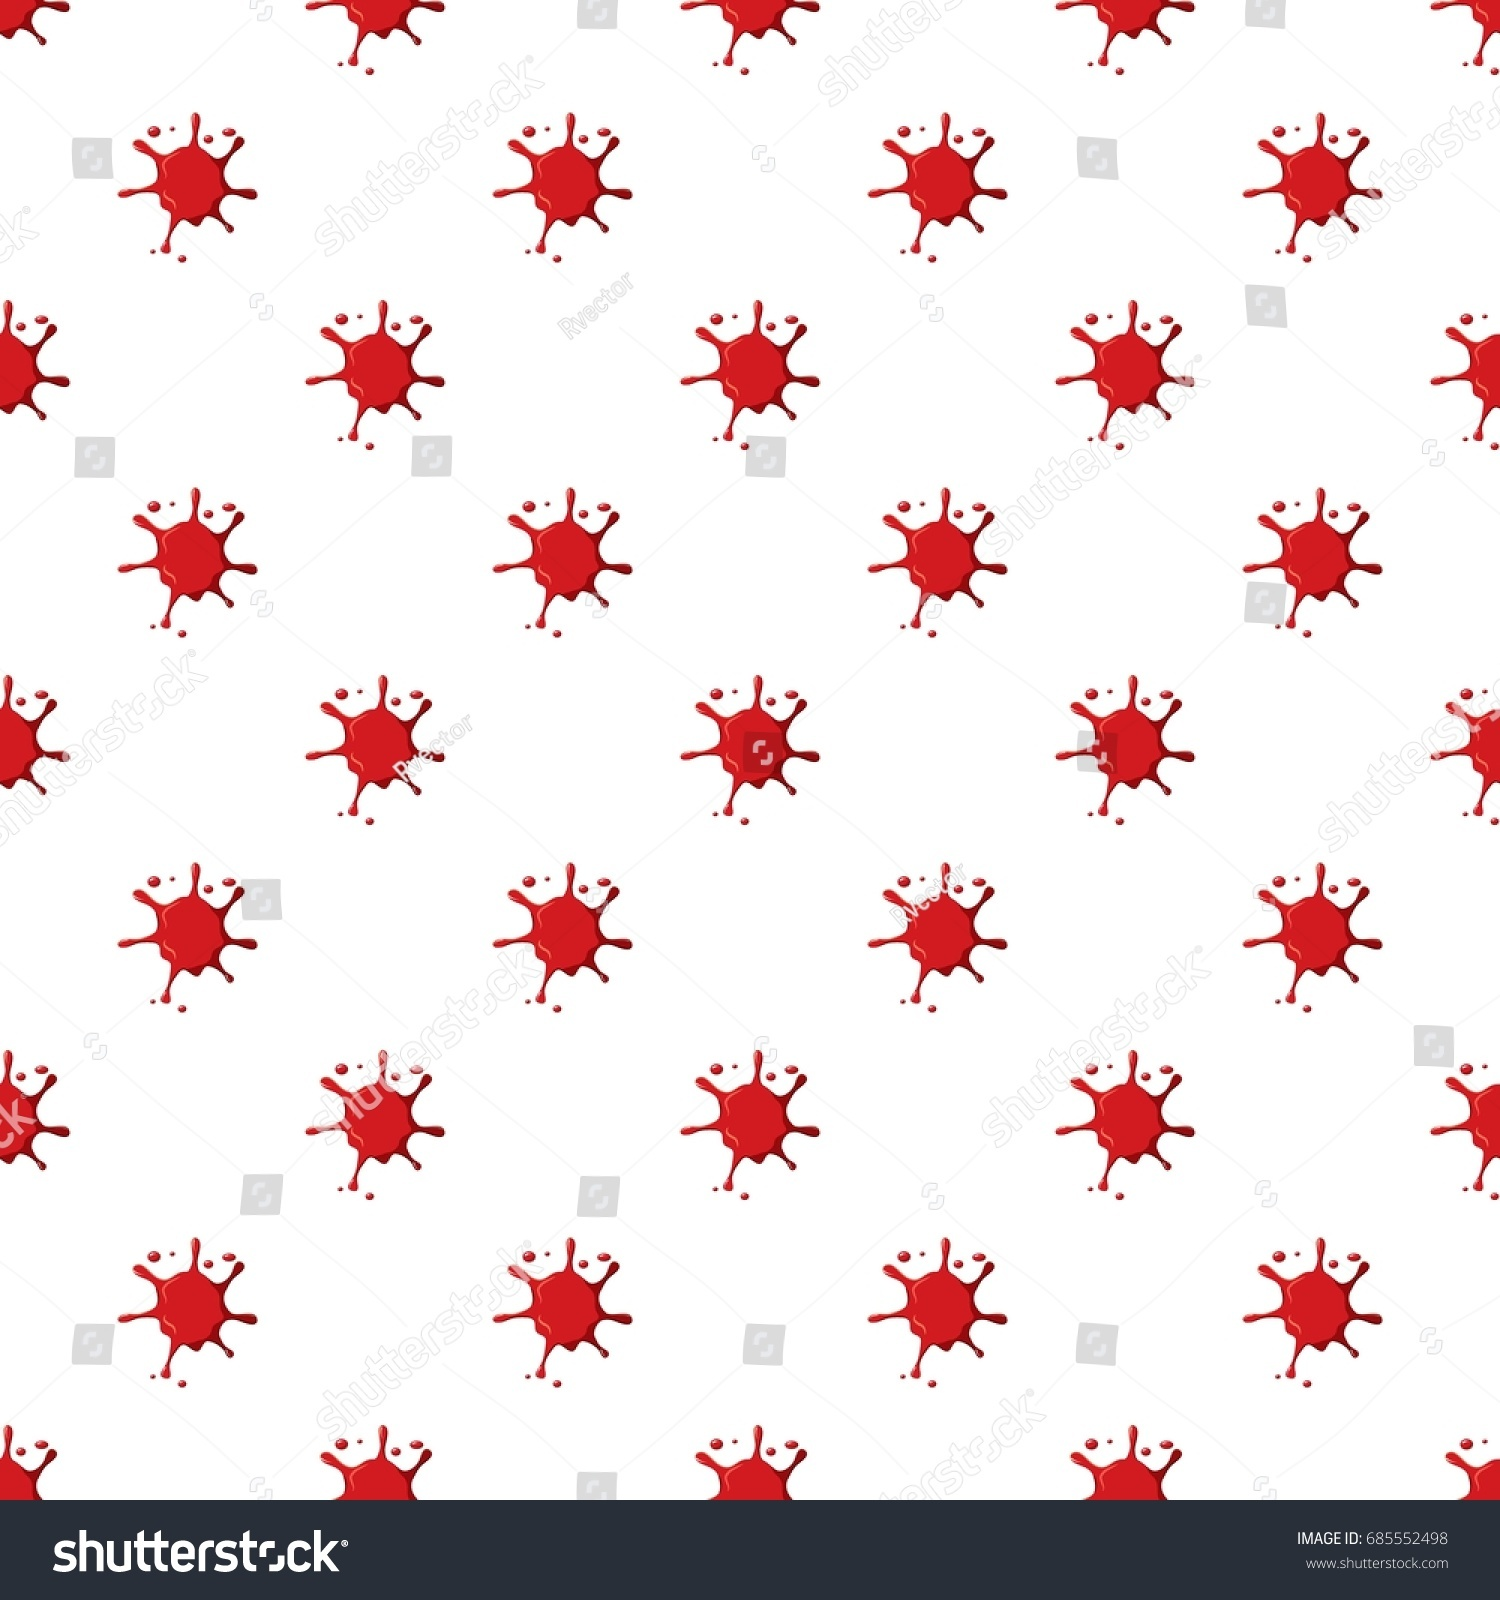 Blood Spatter Patterns New Inspiration Ideas